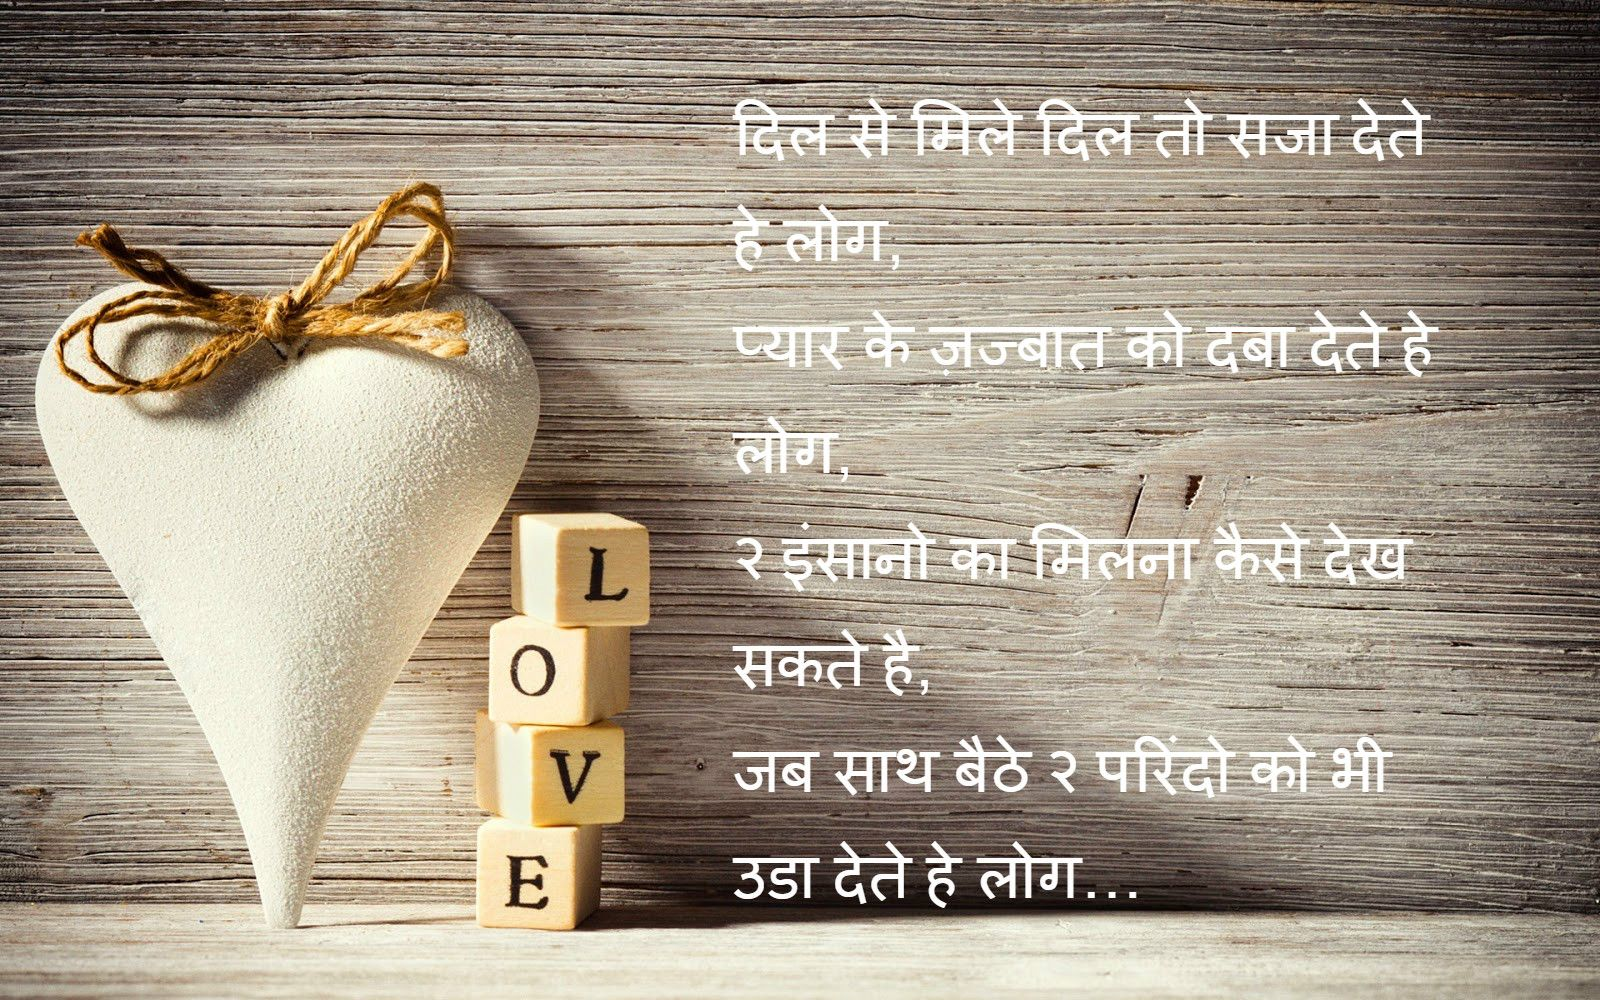 Wallpaper download love shayri - Hindi Shayari Love Shayari Images Sad Shayari Wallpapers Happy New